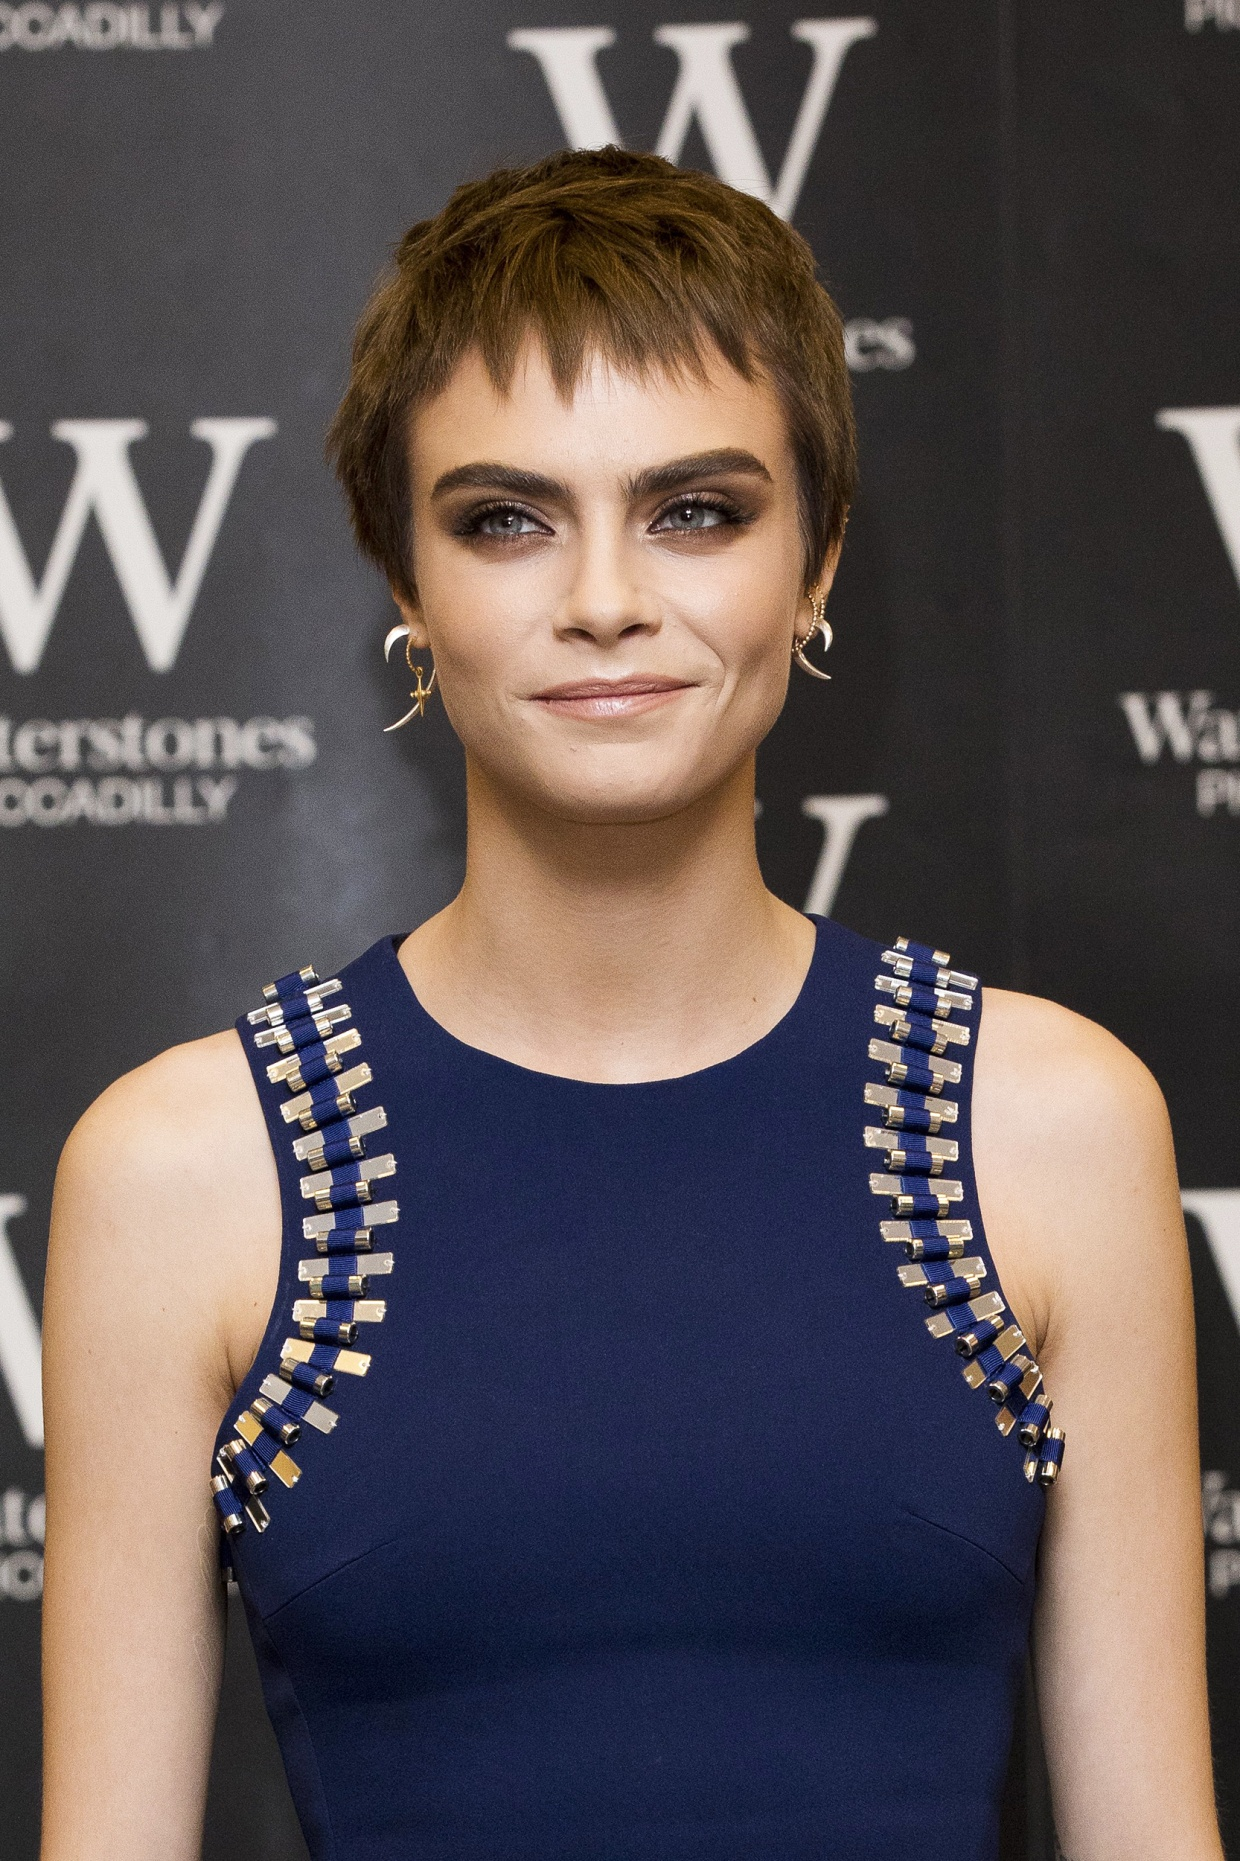 Cara Delevingne Comes Forward With Sexual Harassment Claims Against Harvey Weinstein